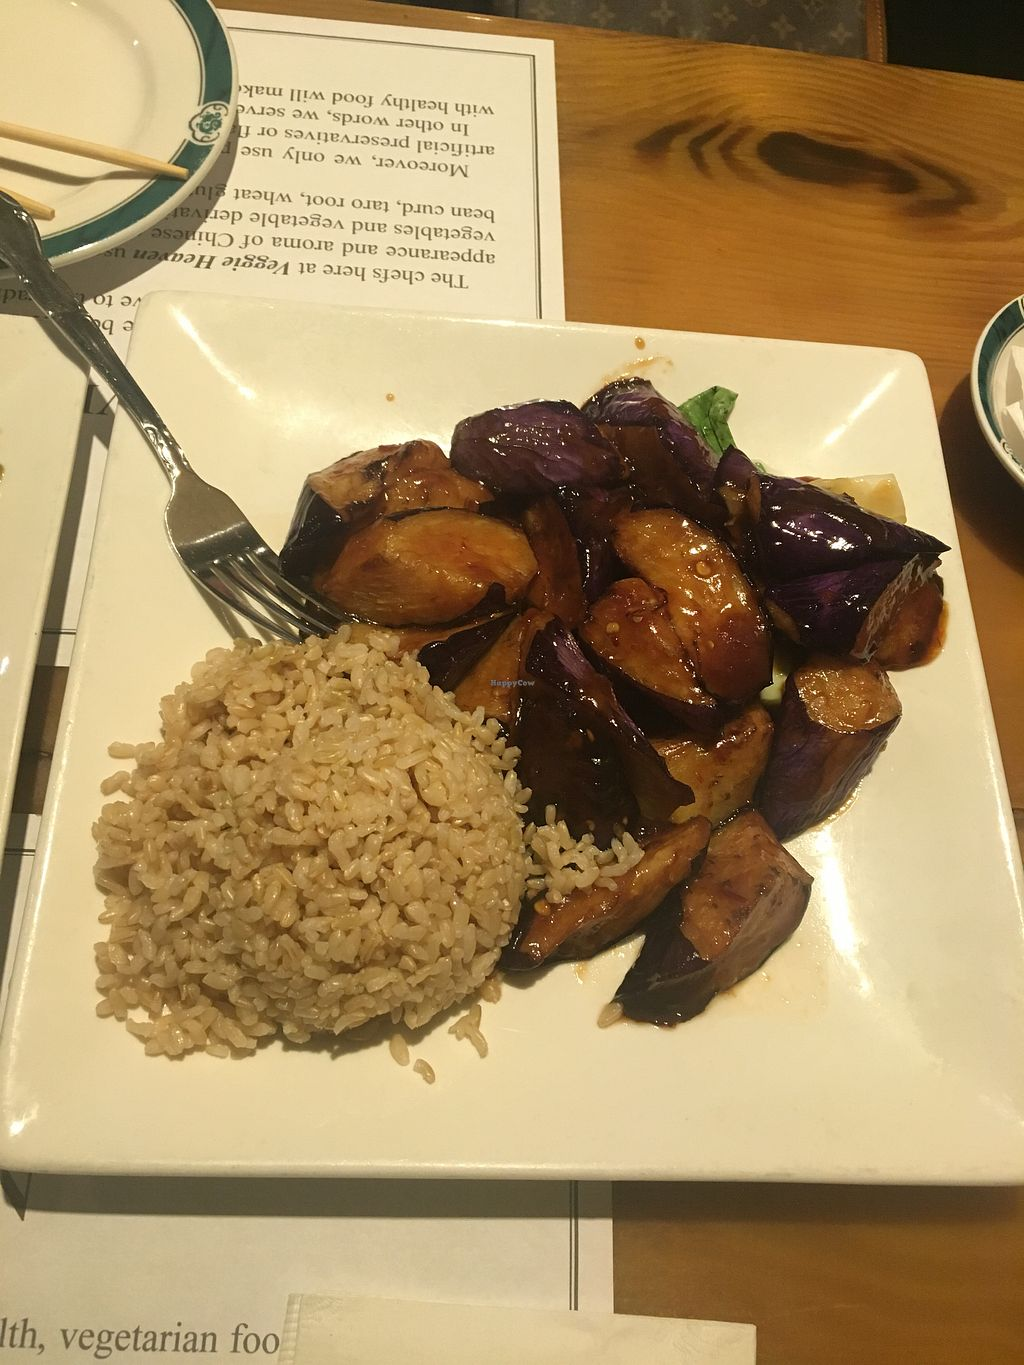 """Photo of Veggie Heaven  by <a href=""""/members/profile/770veg"""" class=""""title__title"""">770veg</a> <br/>Eggplant garlic sauce <br/> August 10, 2018  - <a href='/contact/abuse/image/2231/447217'>Report</a>"""